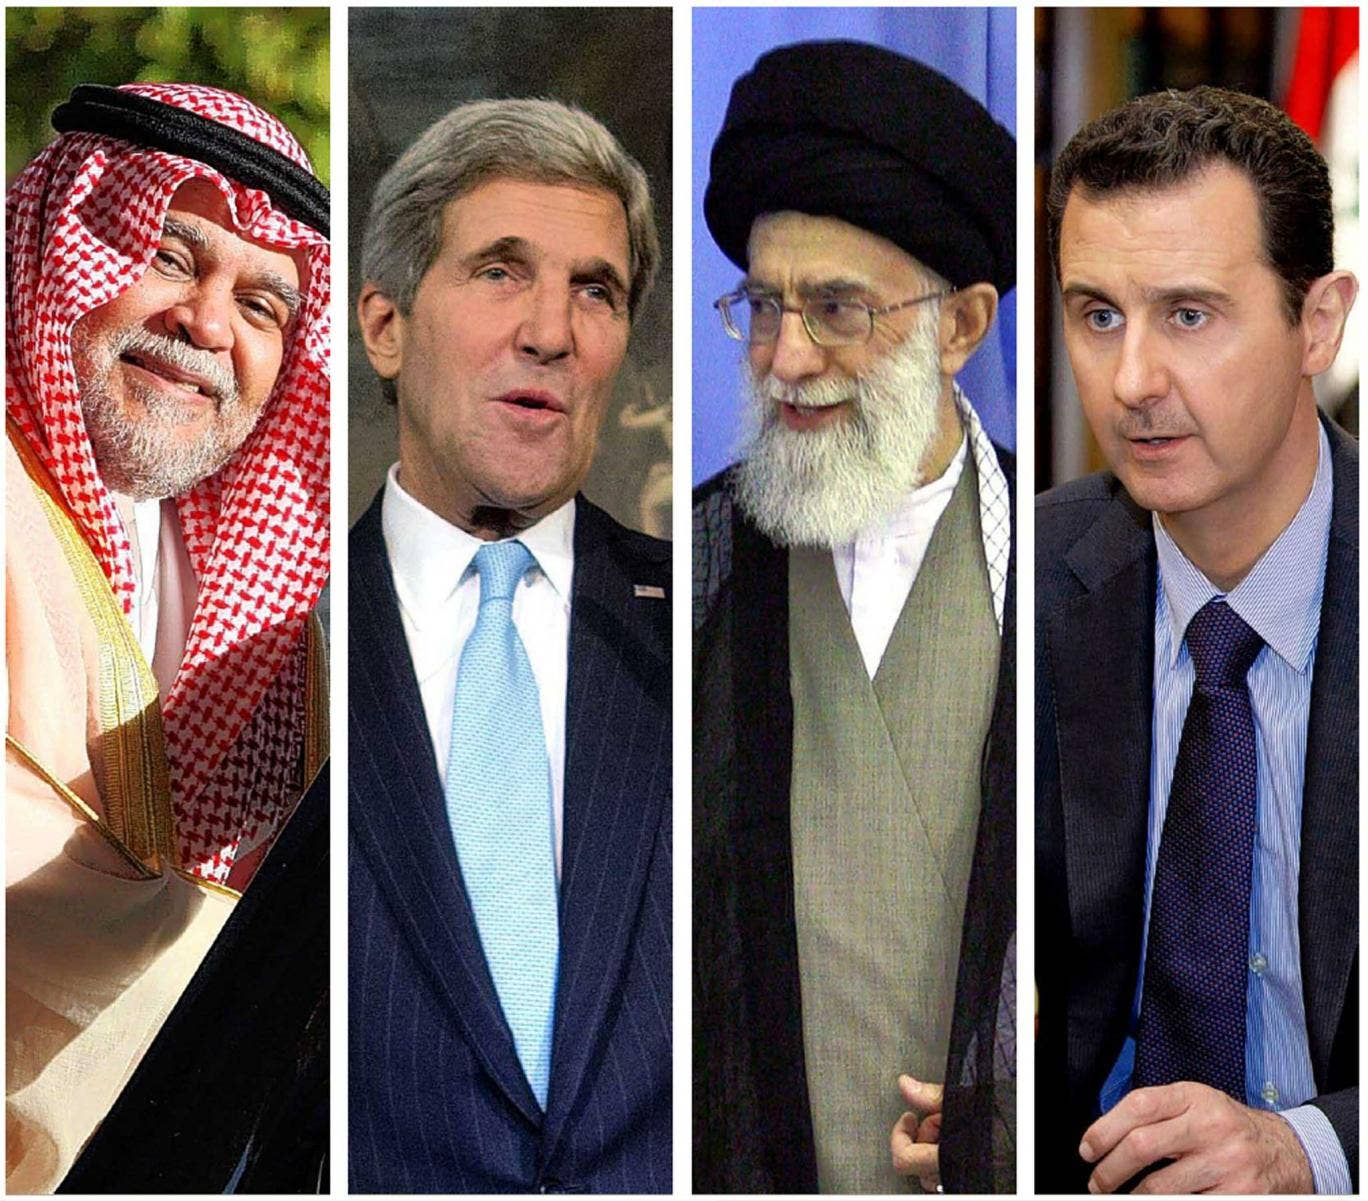 (From left) Prince Bandar bin Sultan, Saudi intelligence chief; US Secretary of State John Kerry; Iran's Ayatollah Khamenei and Syria's President, Bashar al-Assad